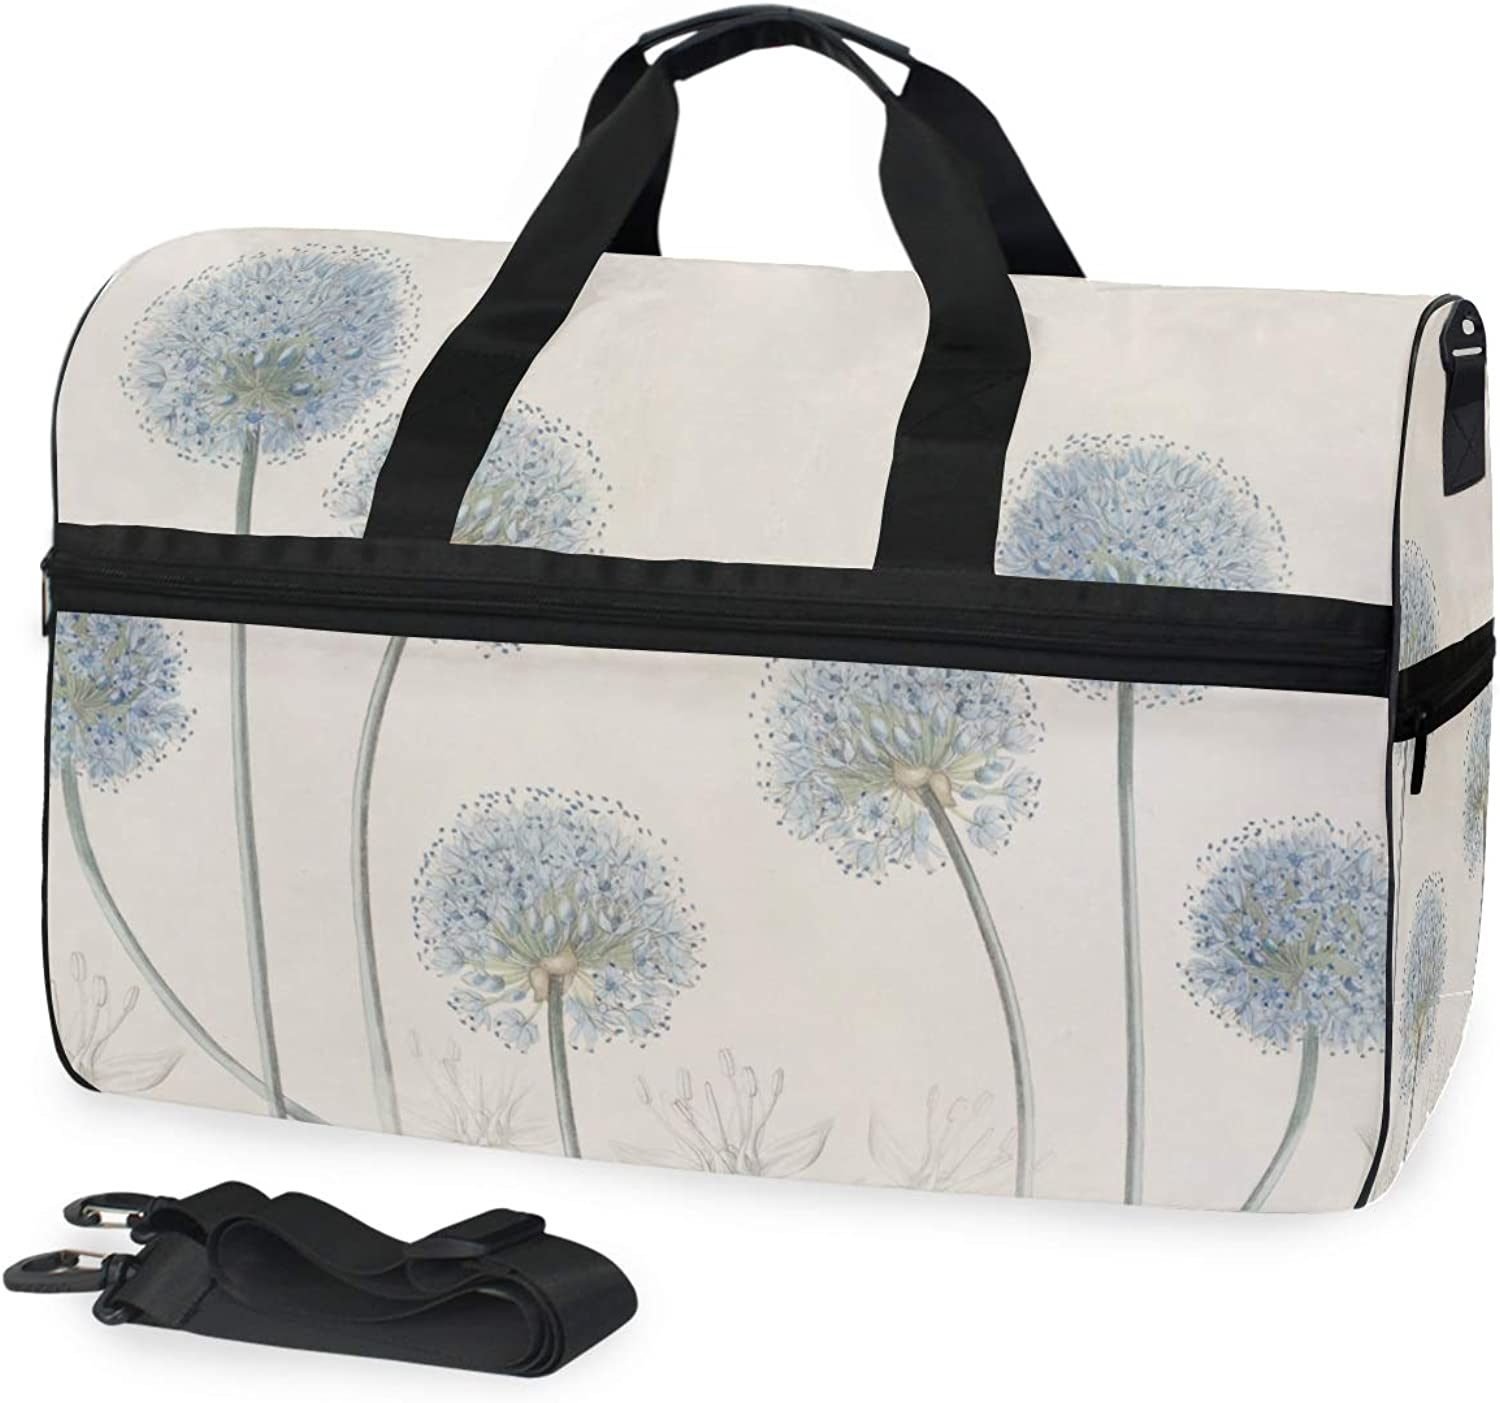 fdb72a08e570 DEZIRO 45L Travel Duffel Bag Cartoon Dandelion Large Weekender Bag ...